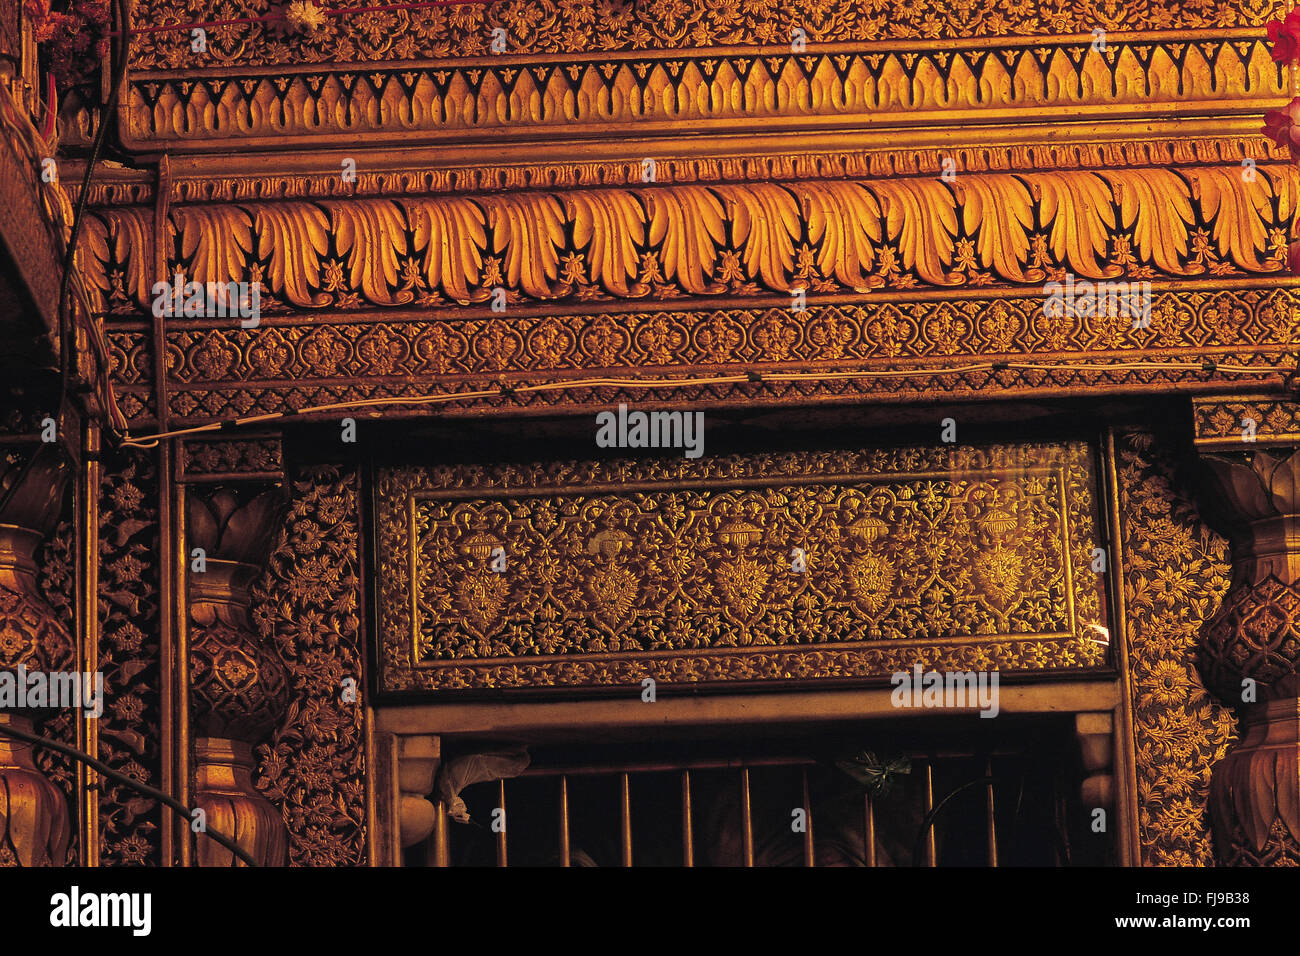 Gold plate embossed golden temple, amritsar, punjab, india, asia - Stock Image